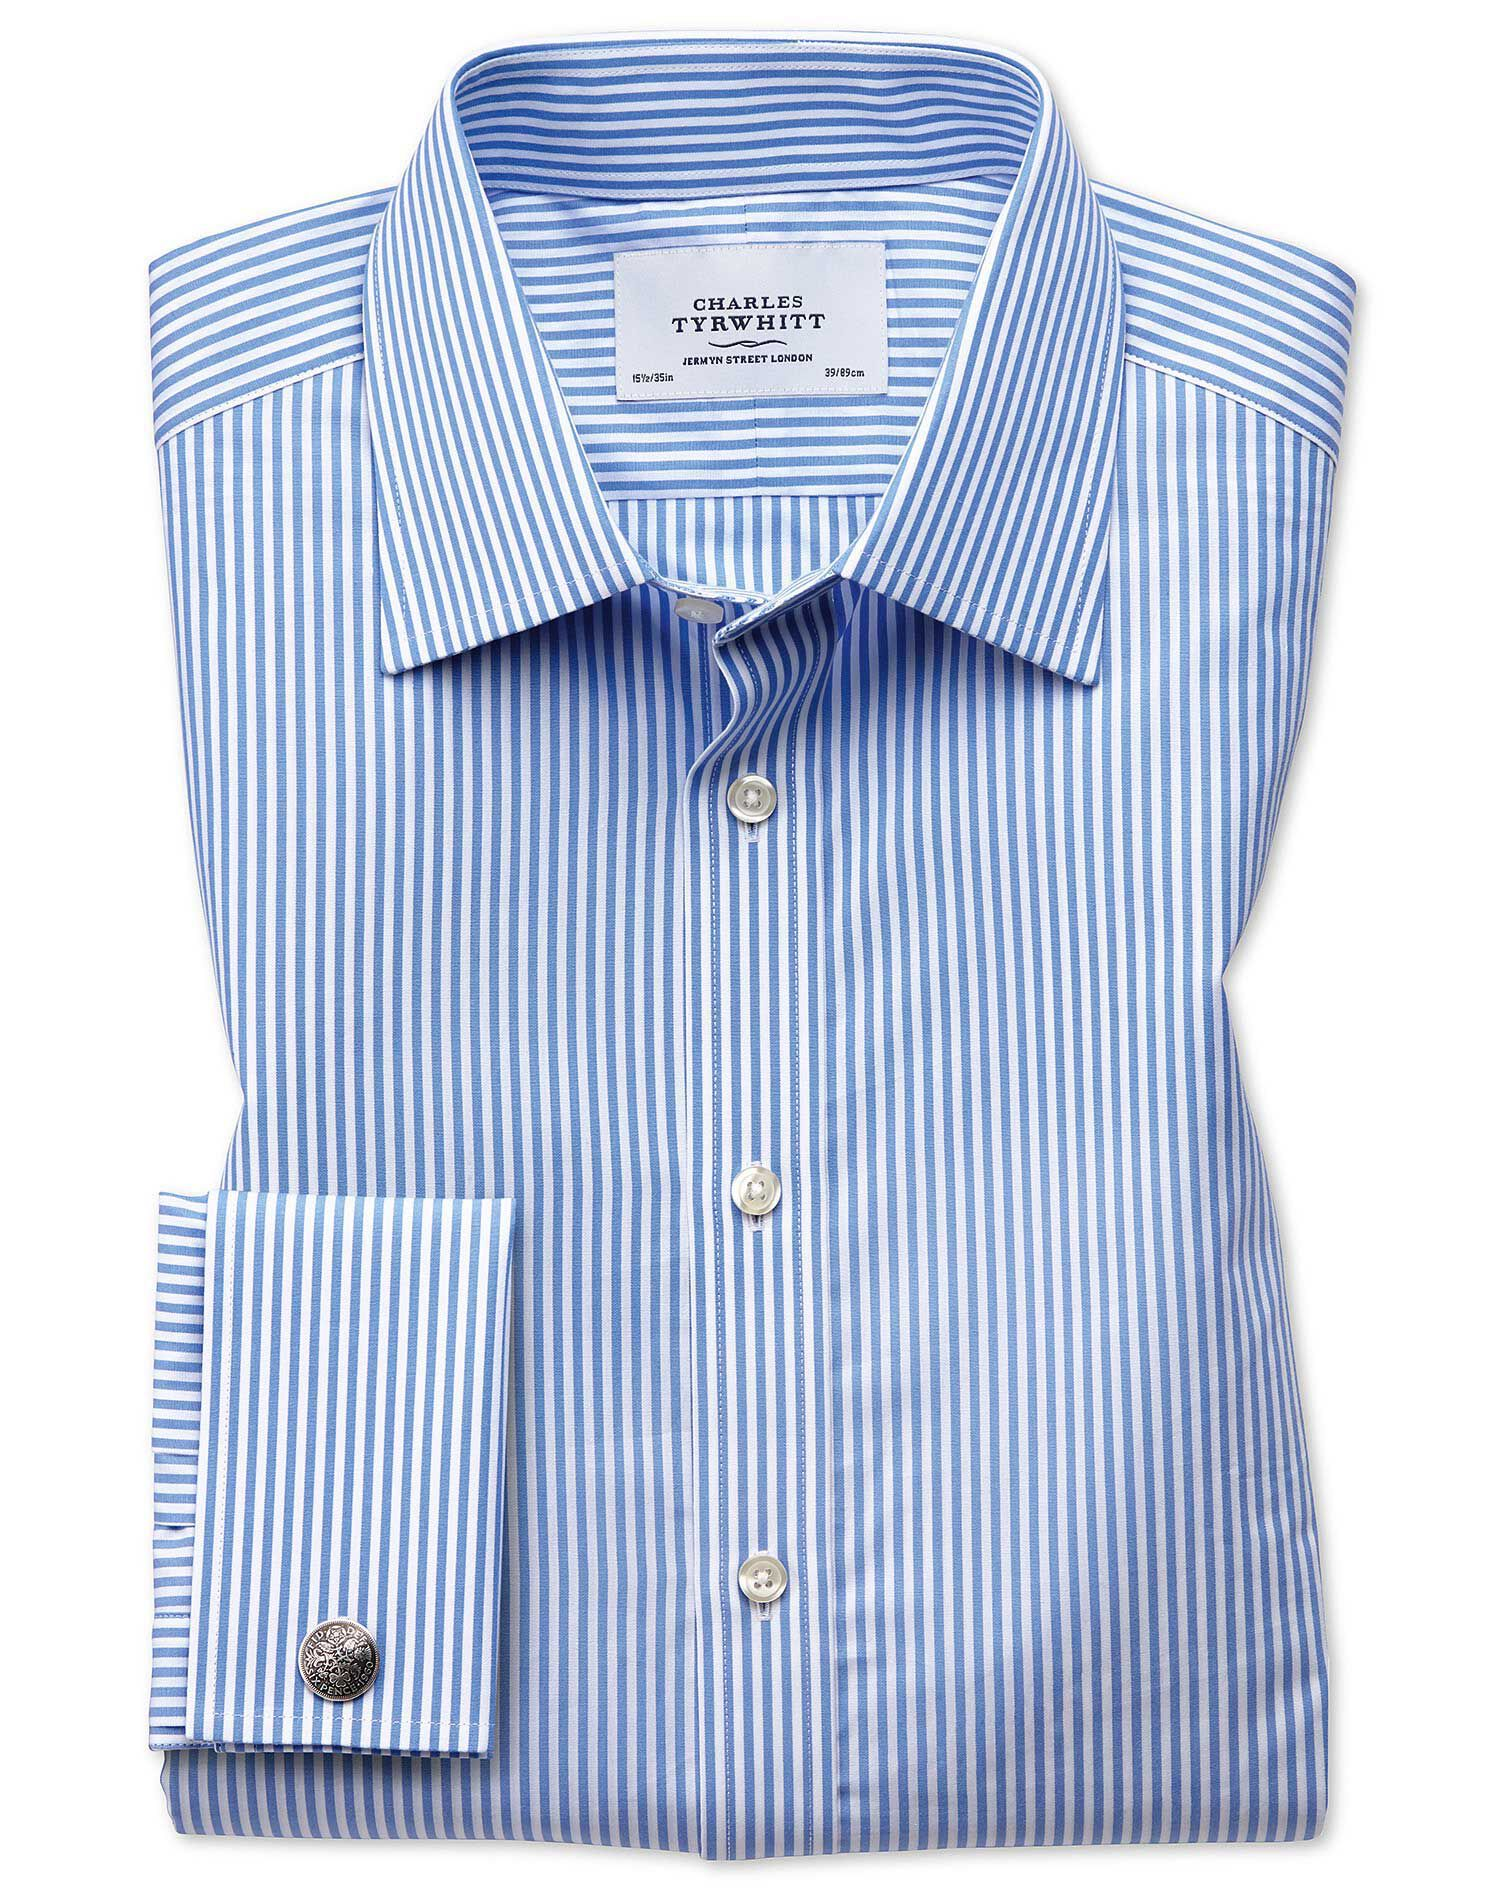 Classic Fit Bengal Stripe Sky Blue Cotton Formal Shirt Double Cuff Size 16/35 by Charles Tyrwhitt